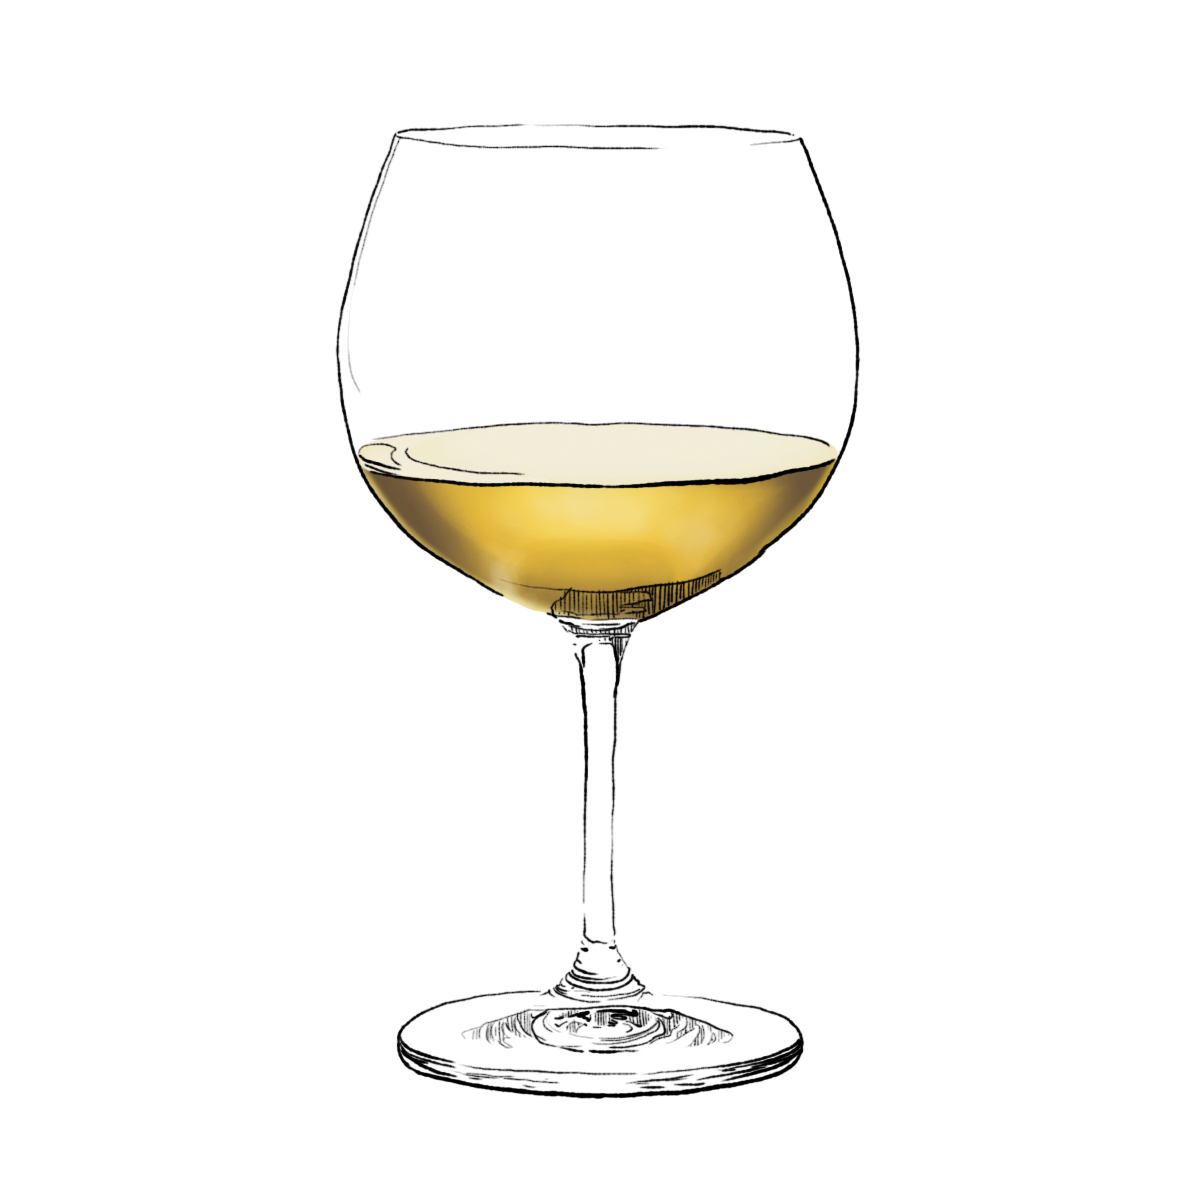 noli-soli-wine-glasses-white-3